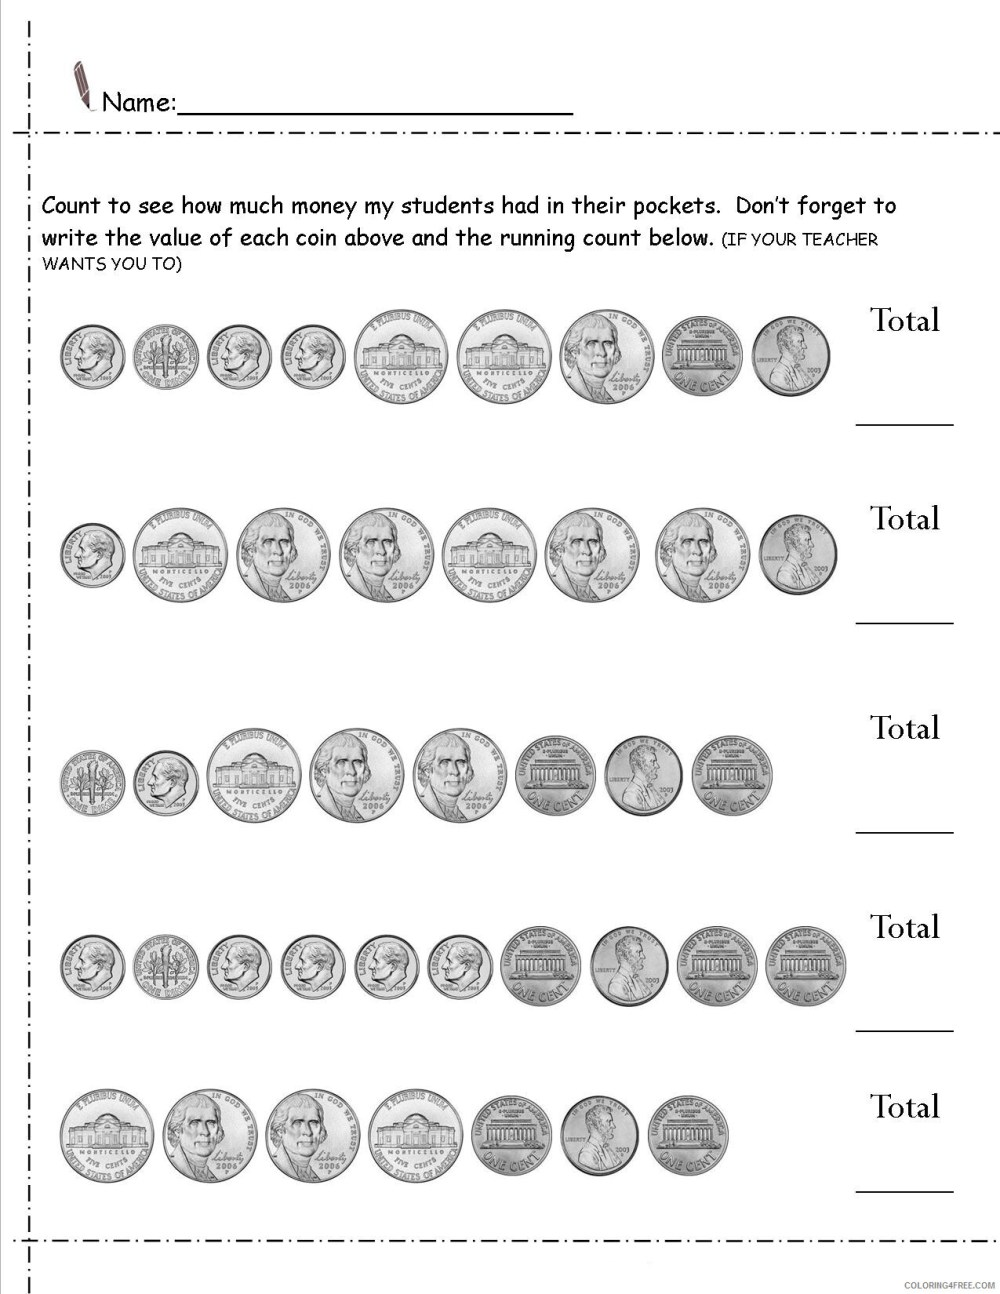 medium resolution of 2nd Grade Coloring Pages Educational Money Worksheets Printable 2020 0160  Coloring4free - Coloring4Free.com